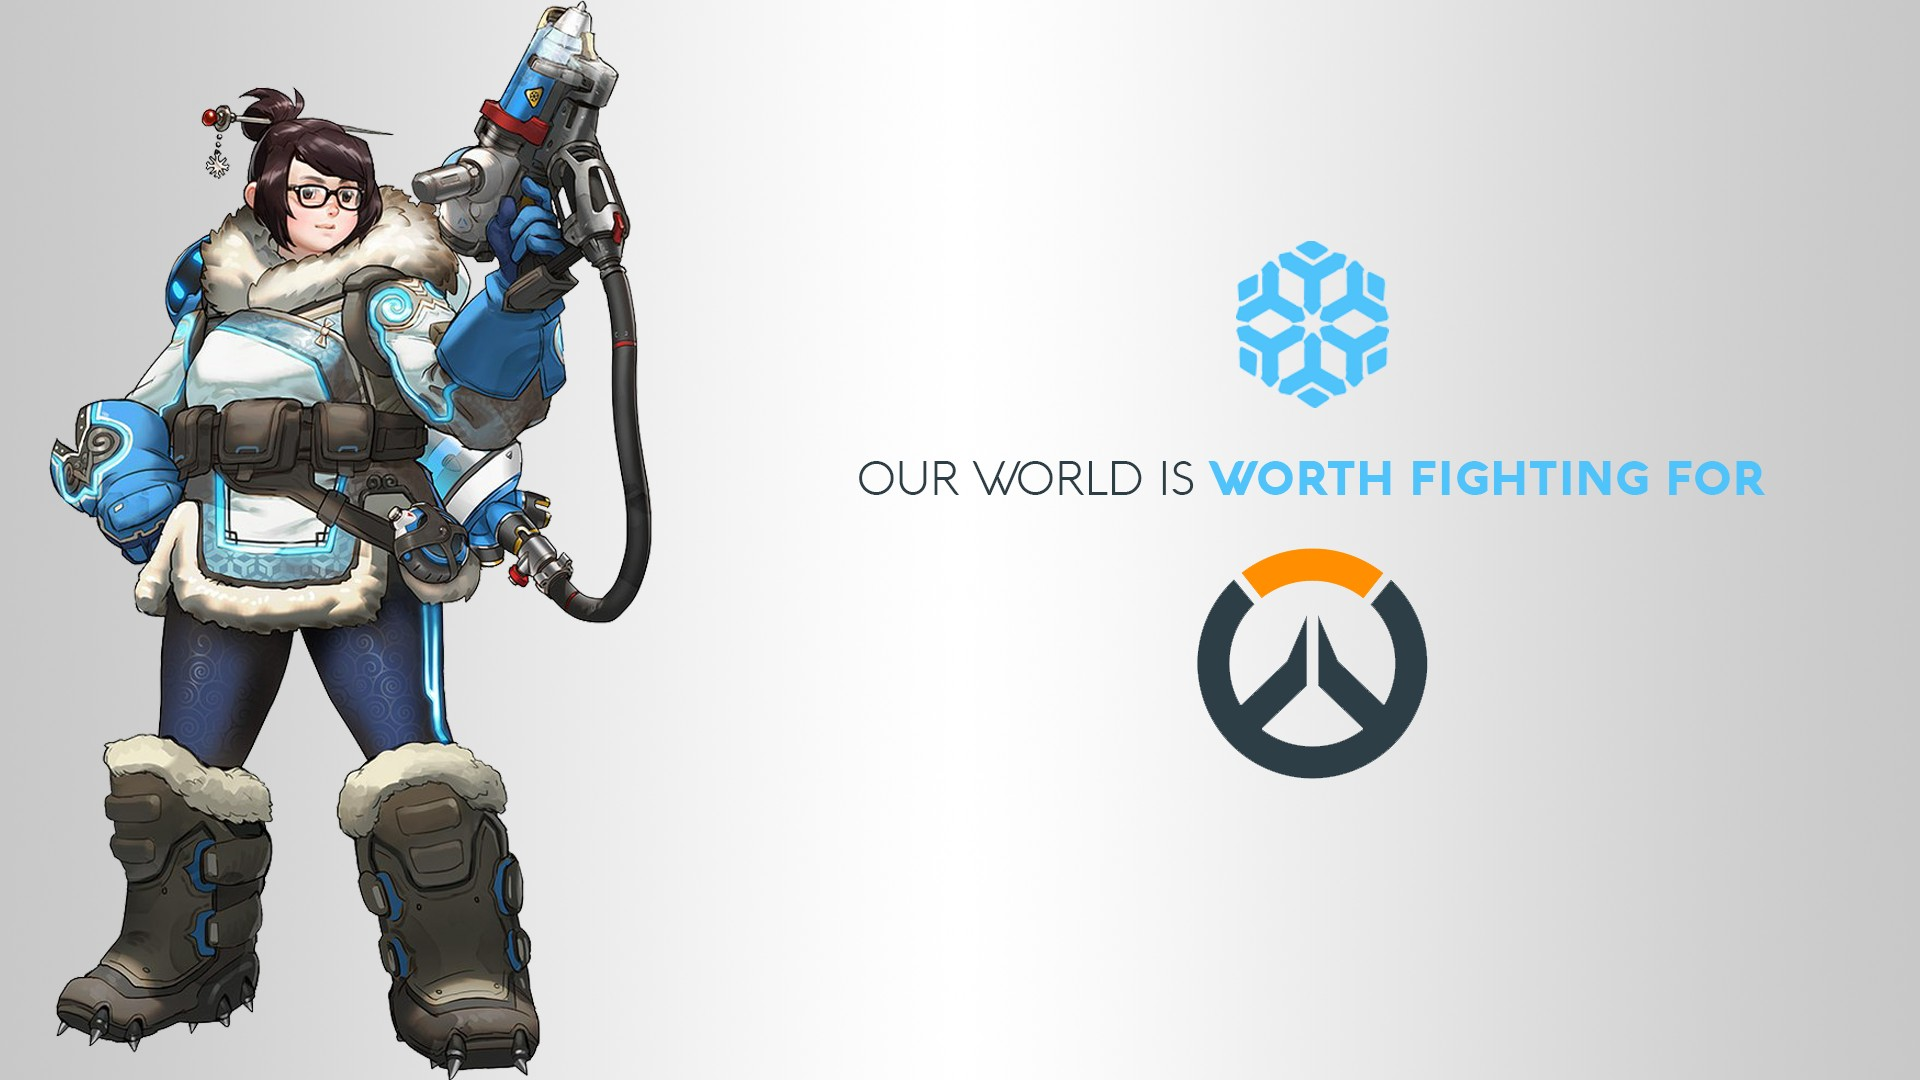 Mei Wallpaper ① Download Free Hd Backgrounds For Desktop And